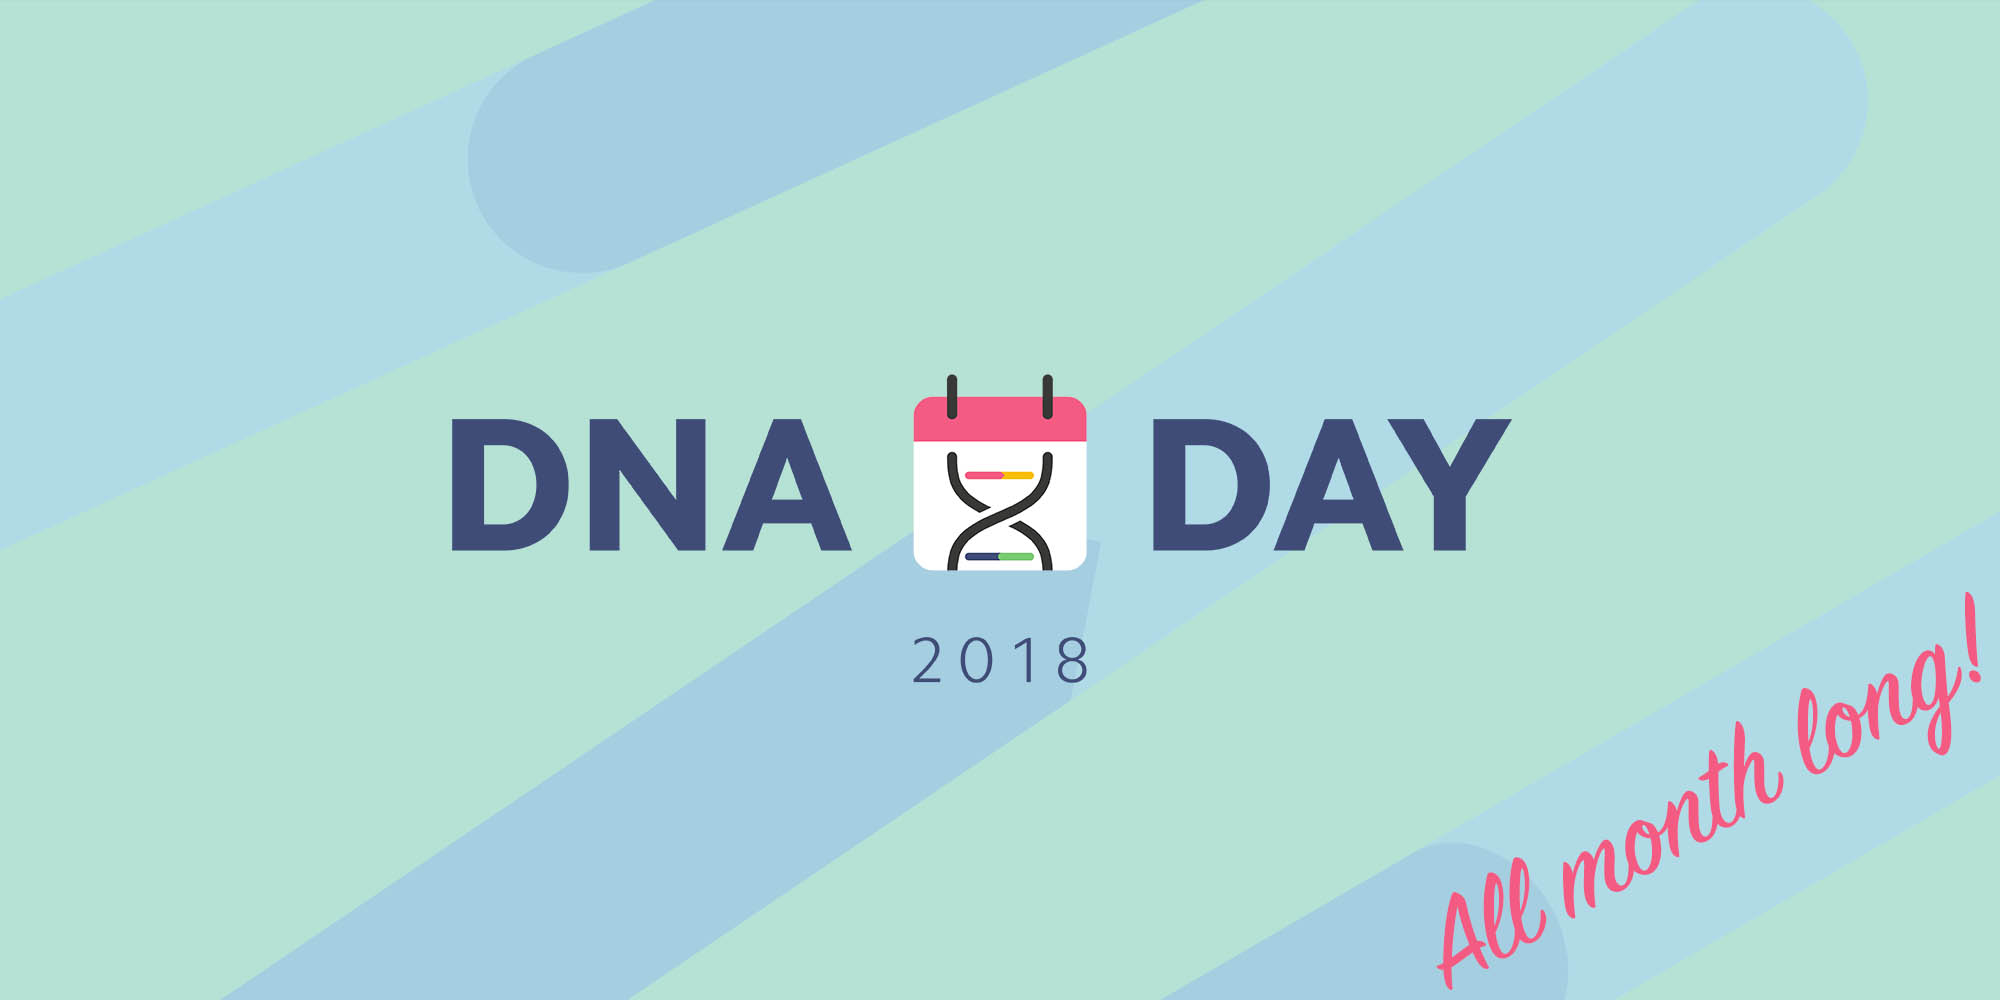 DNA Day 2018: All month long!